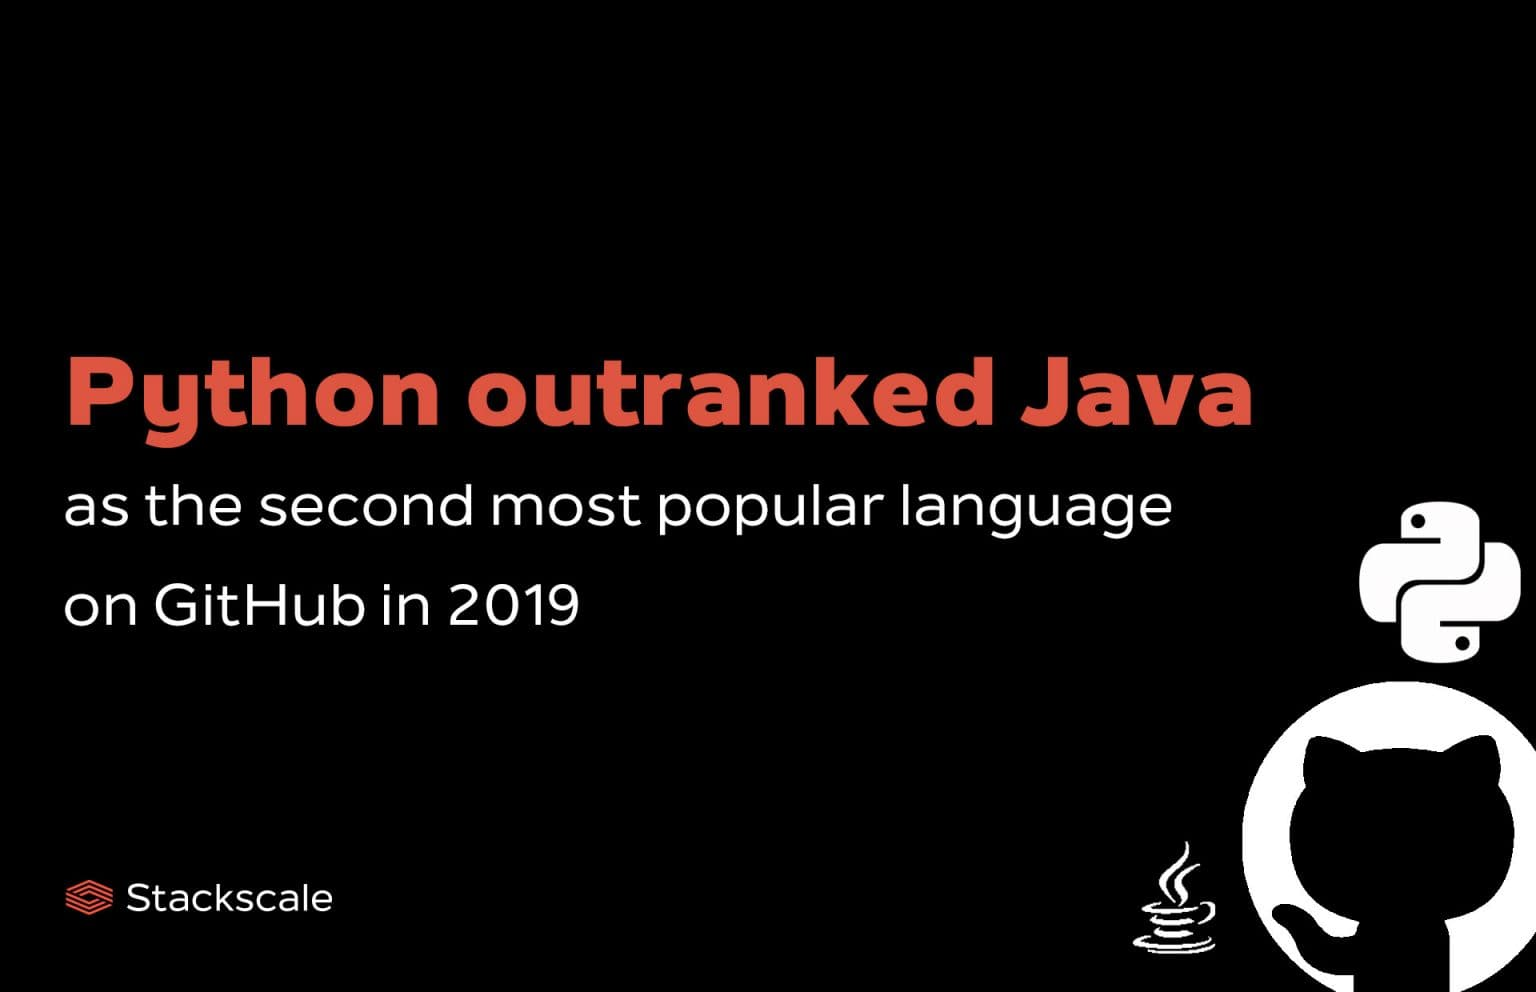 Python outranks Java on GitHub by number of repository contributors in 2019